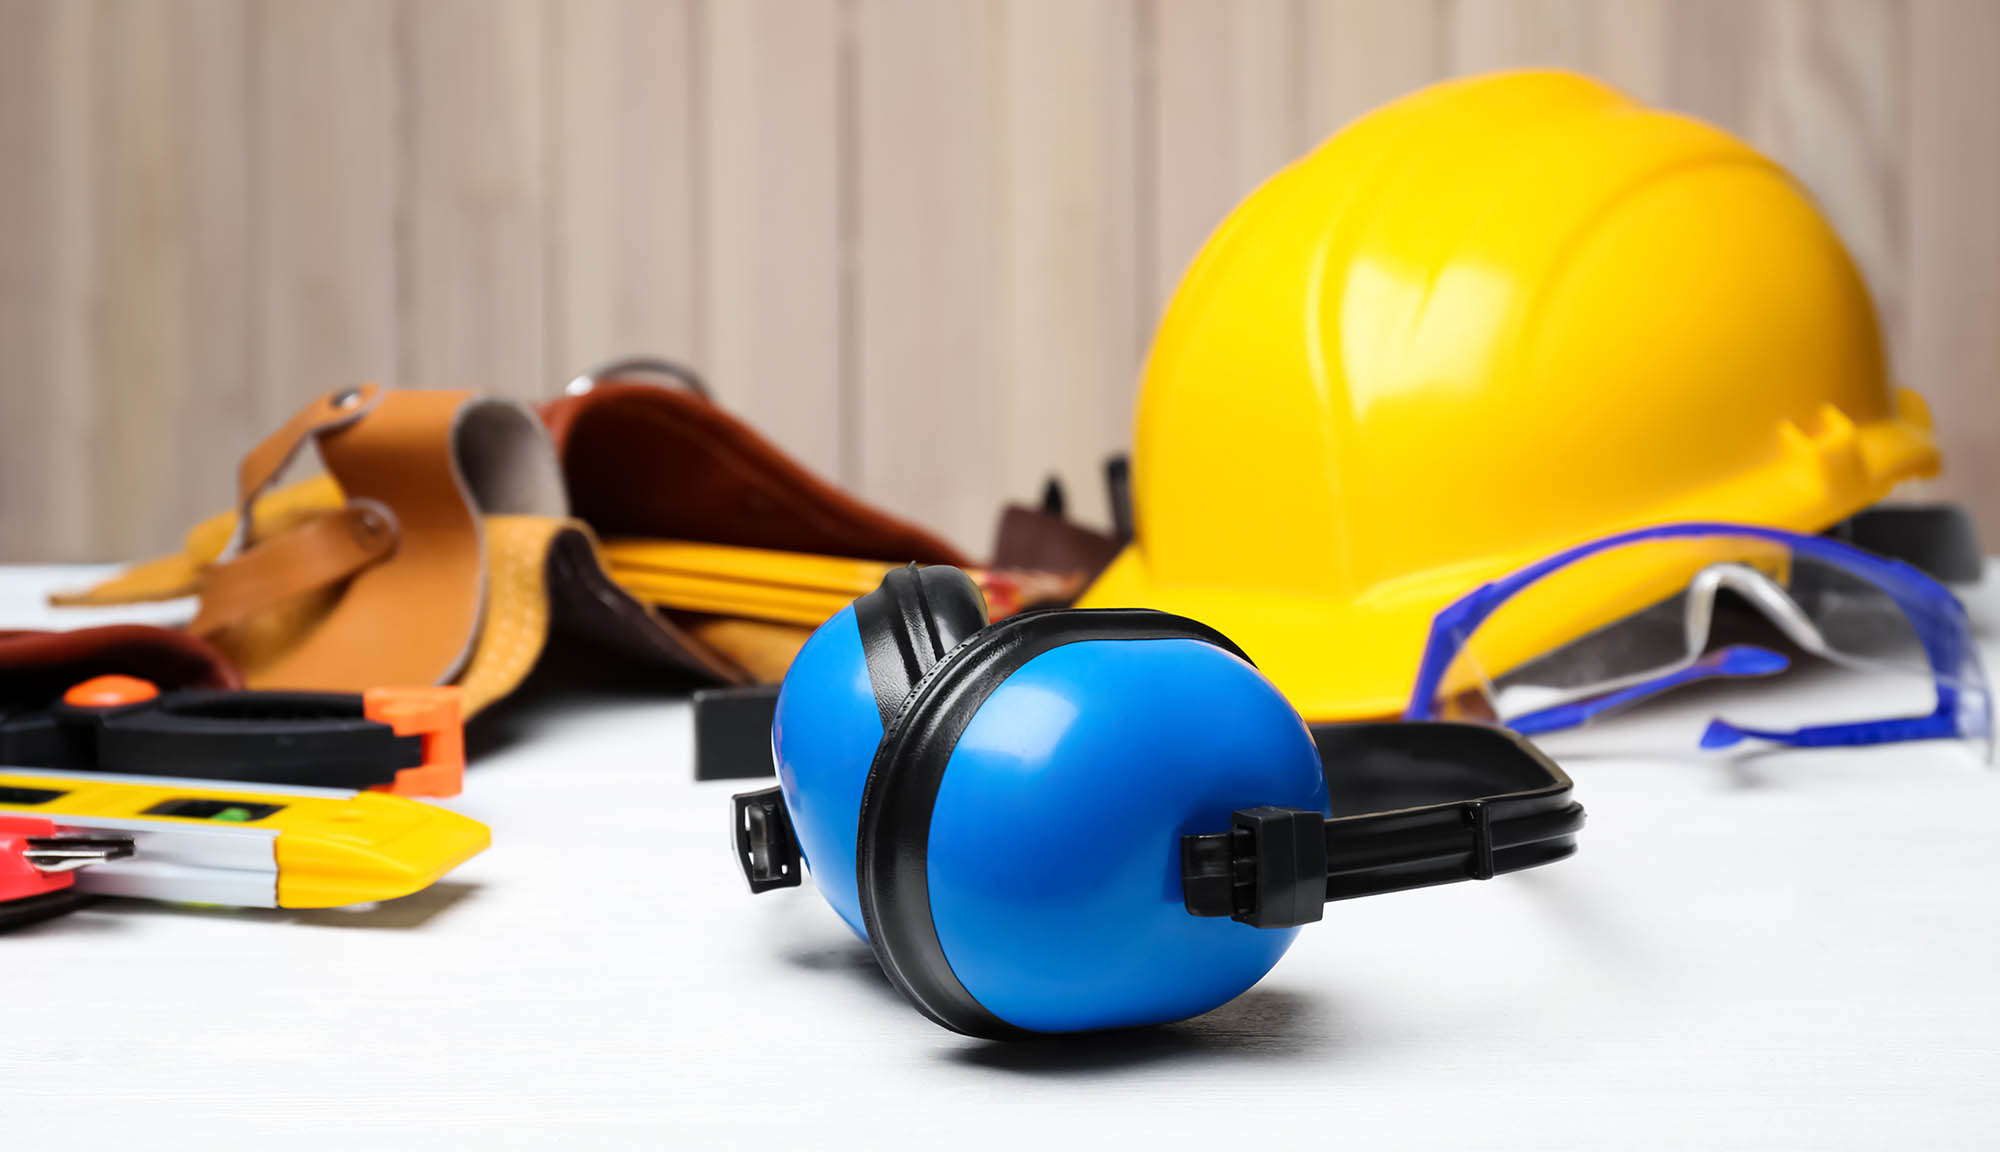 personal protective equipment for safety in the workplace